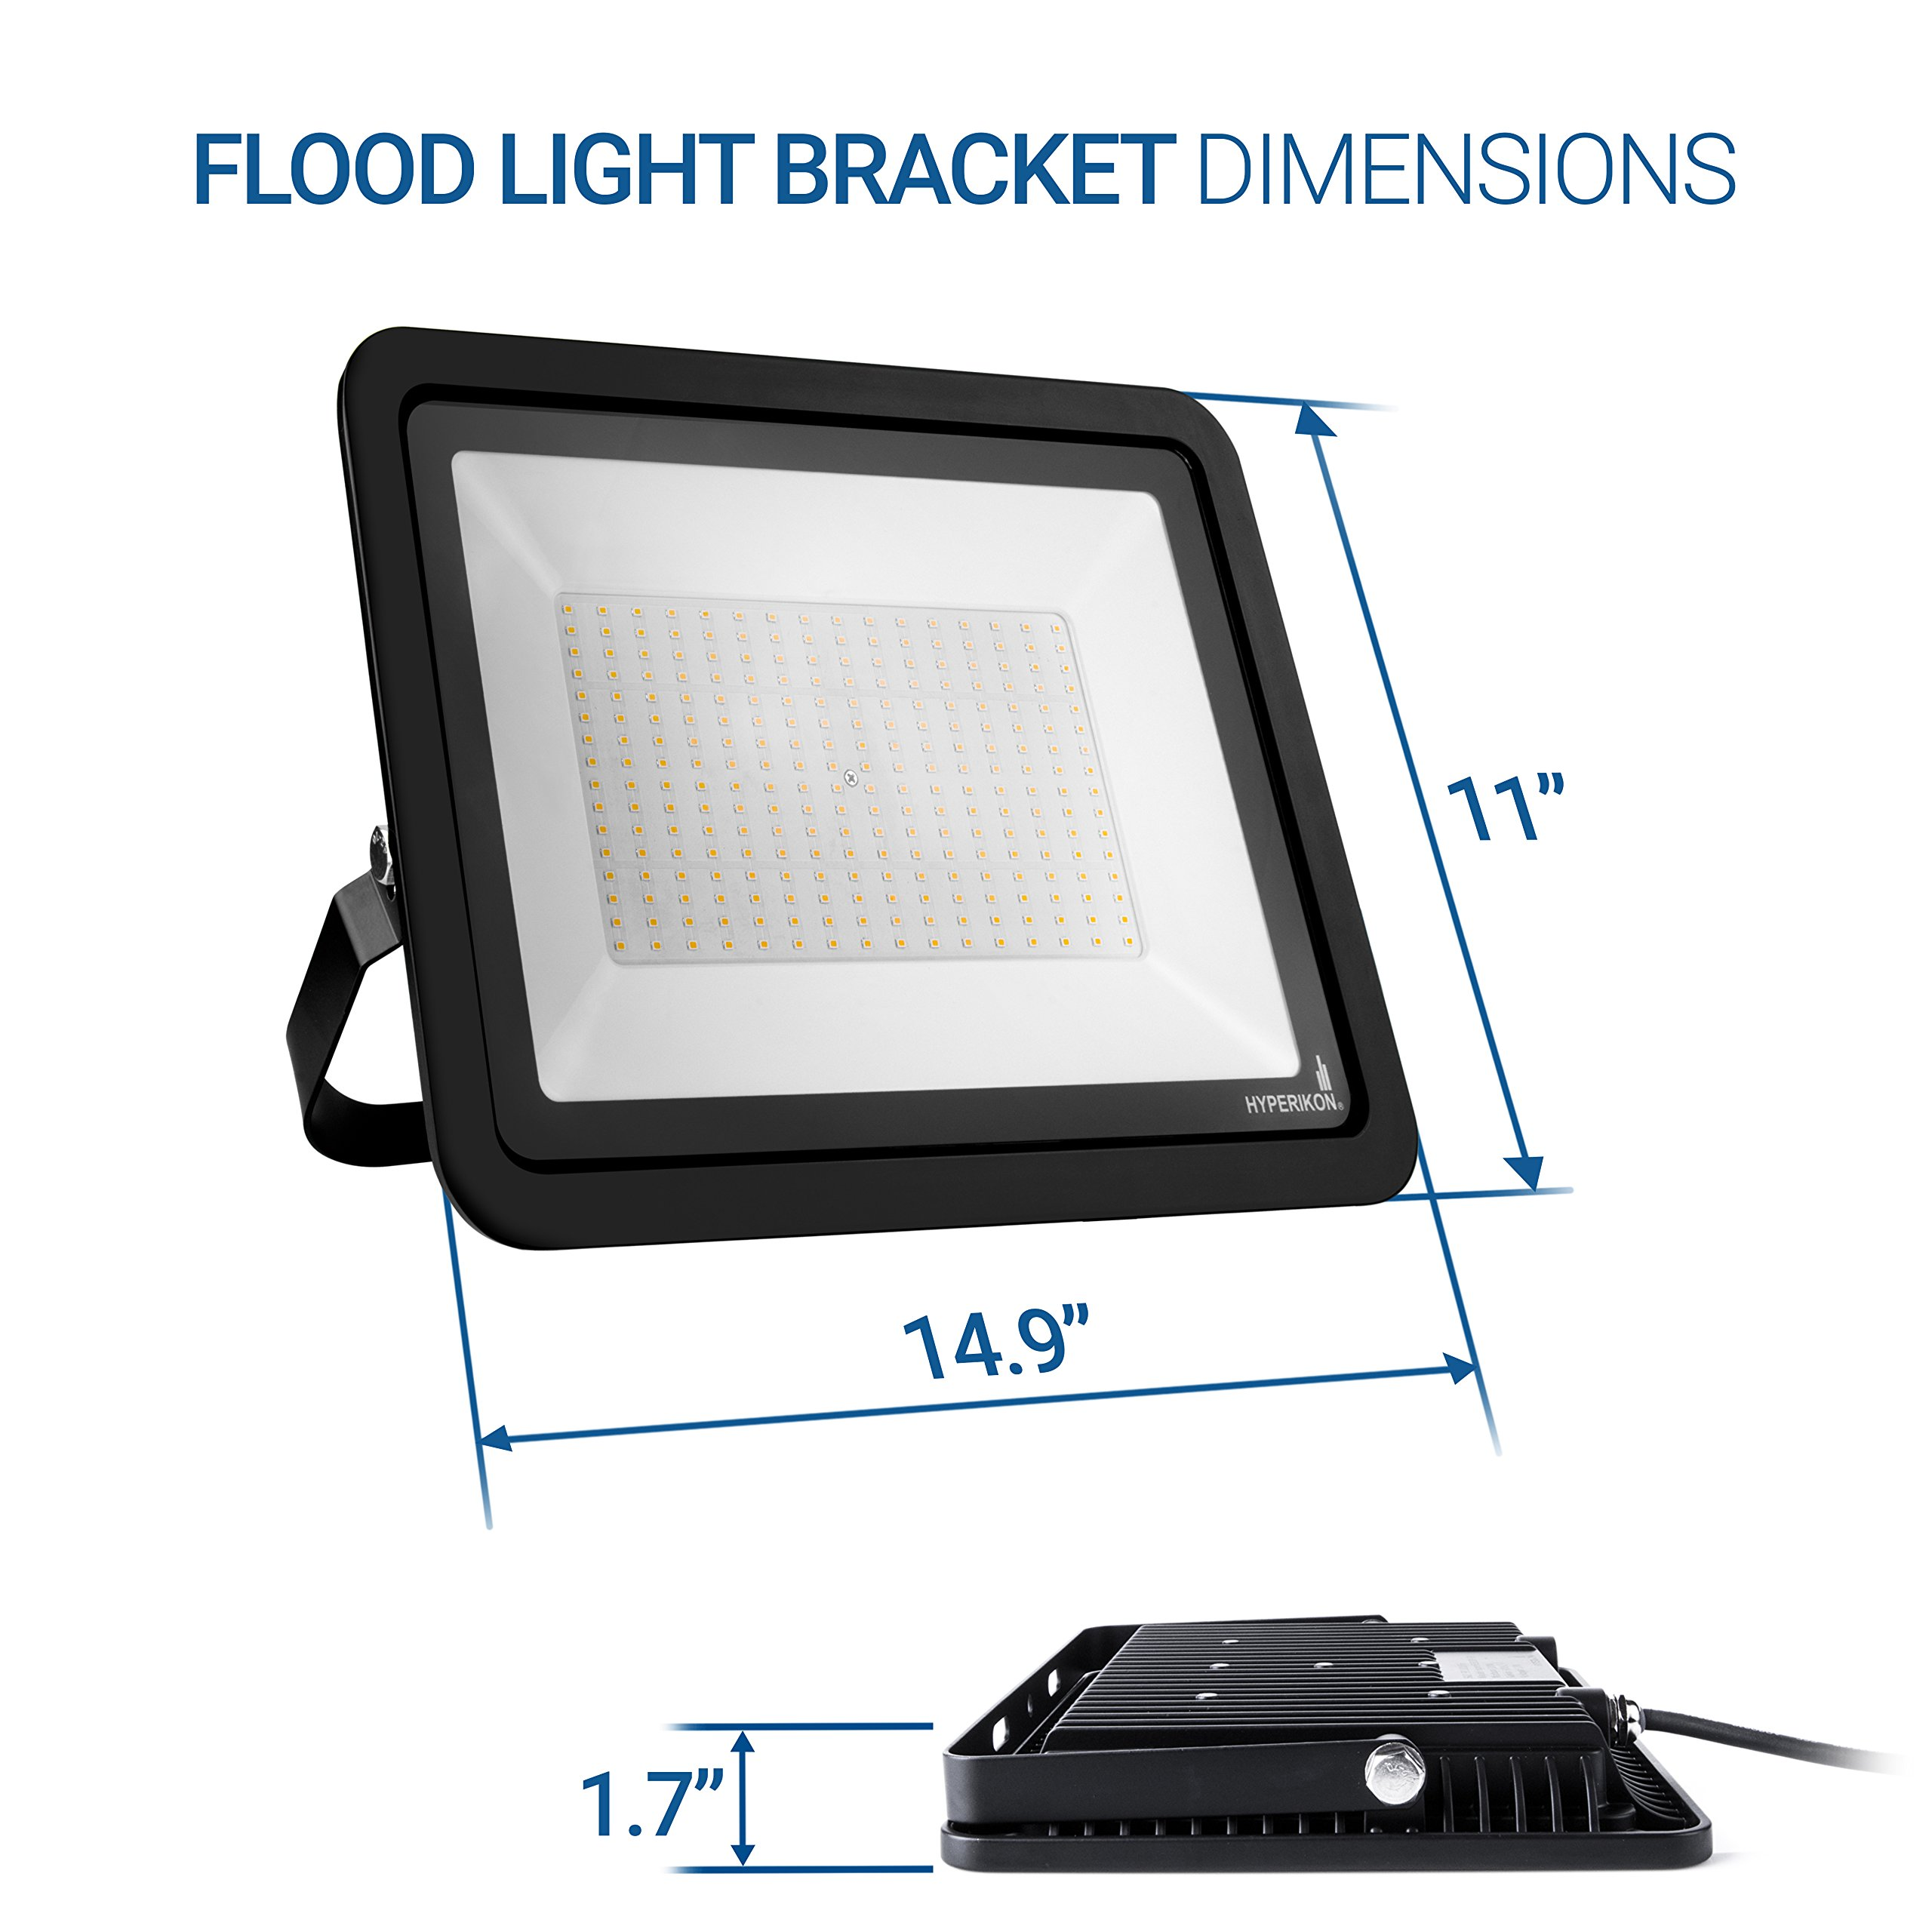 Hyperikon LED Flood Light 200W (1000 Watt Eq.) 180° Rotatable Bracket, 5000k,16000 Lm, Super Bright Outdoor LED Floodlight, Weatherproof IP65, Suitable for Dry and Damp Locations, 110V, 2-Pack by Hyperikon (Image #7)